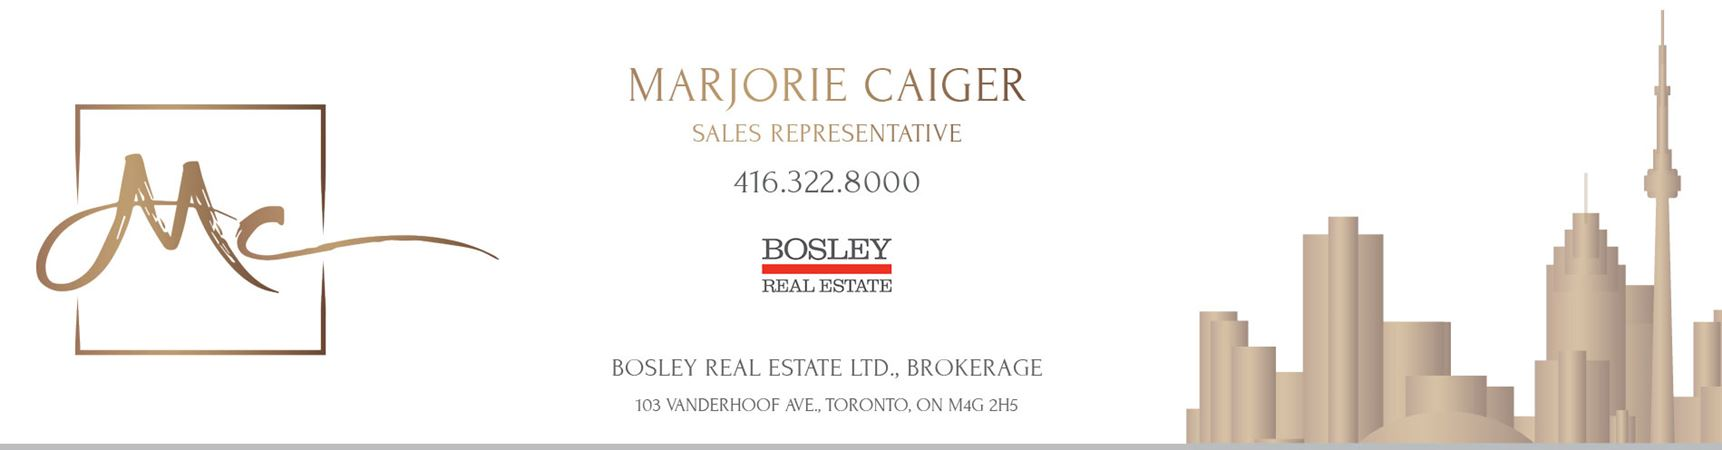 Marjorie Caiger | Real Estate Sales Representative